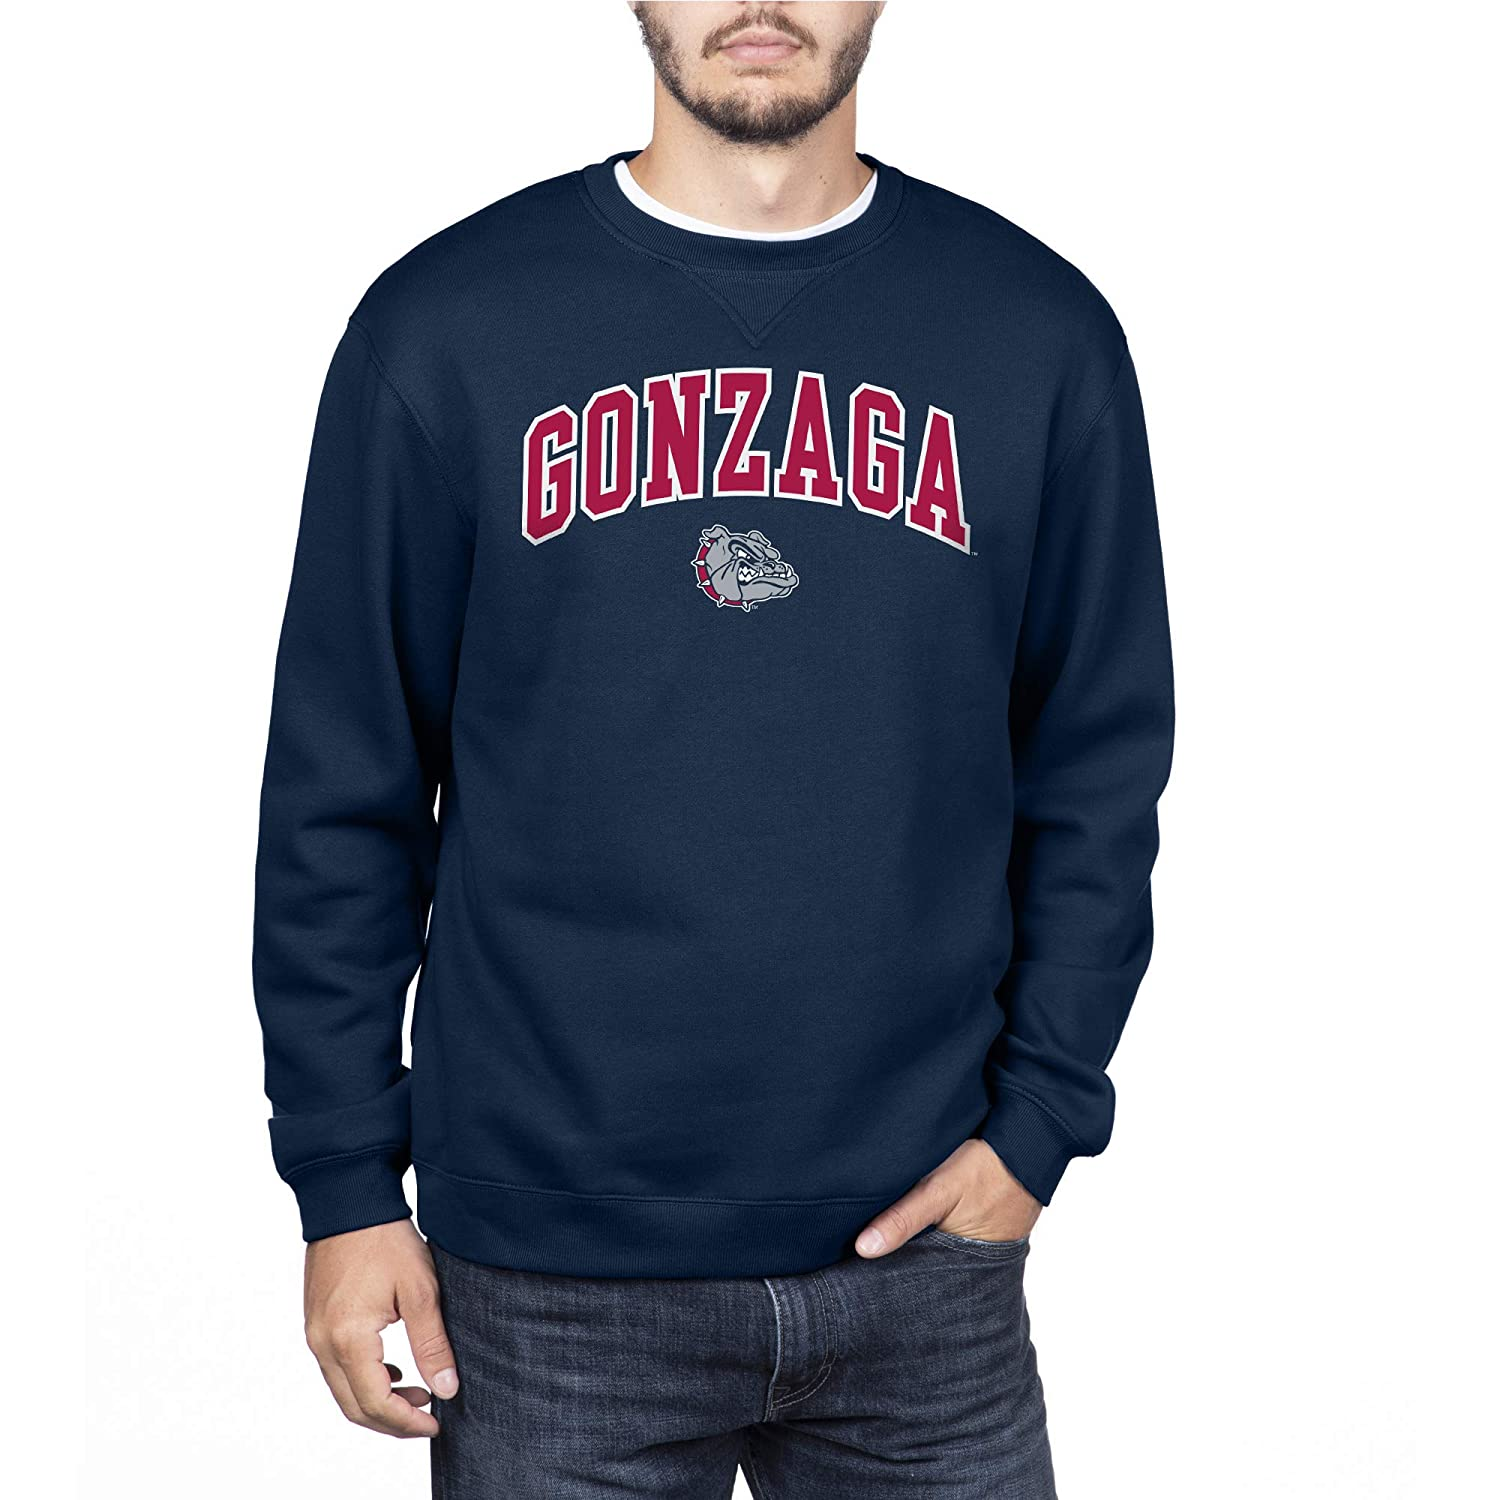 Navy XX-Large NCAA Gonzaga Bulldogs Mens Team Color Crewneck Sweatshirt